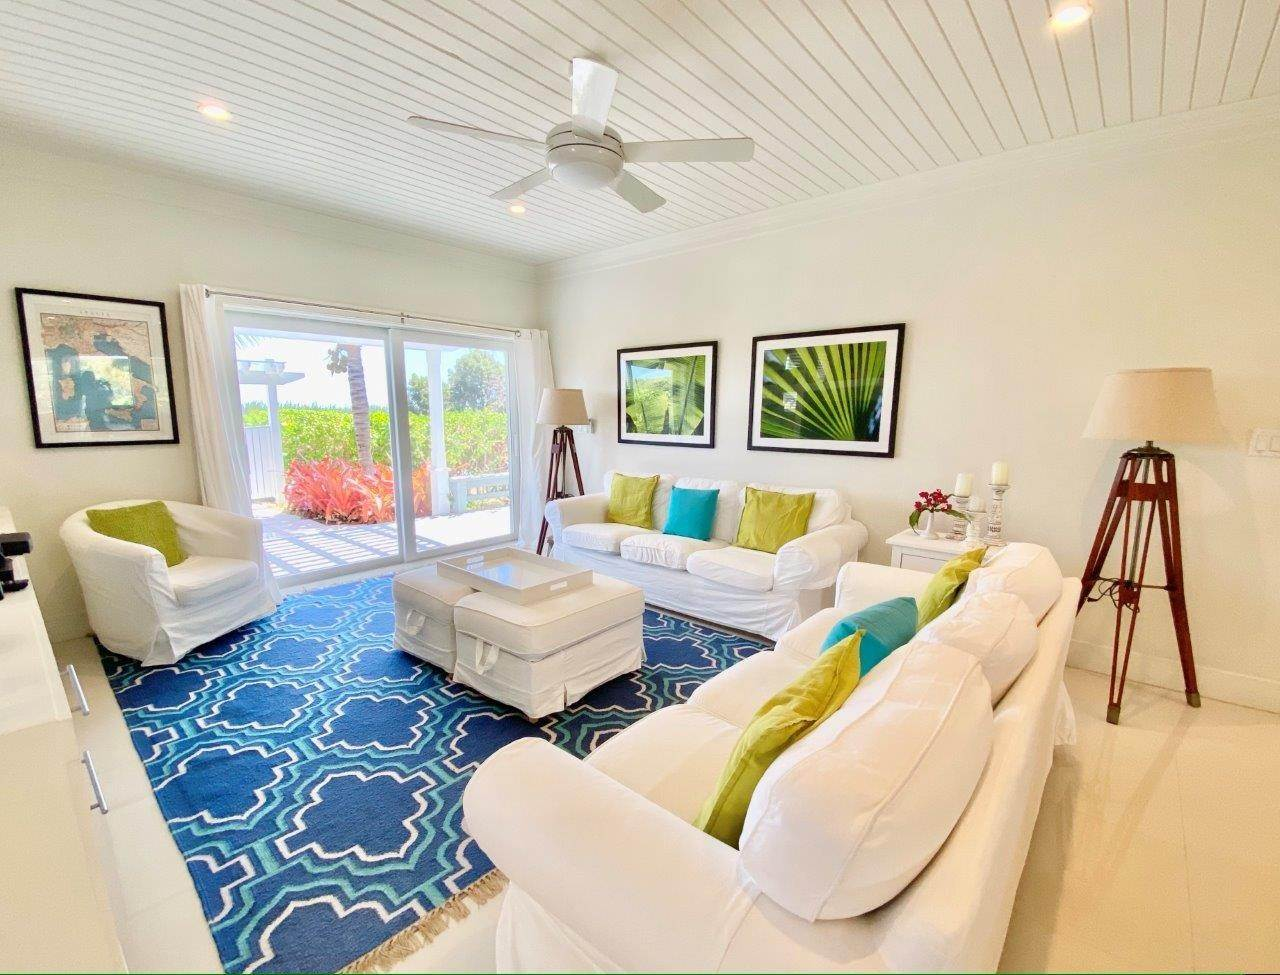 3. Single Family Homes for Sale at Fabulous Coastal Living Home in Governor's Harbour - MLS 44509 Governors Harbour, Eleuthera, Bahamas